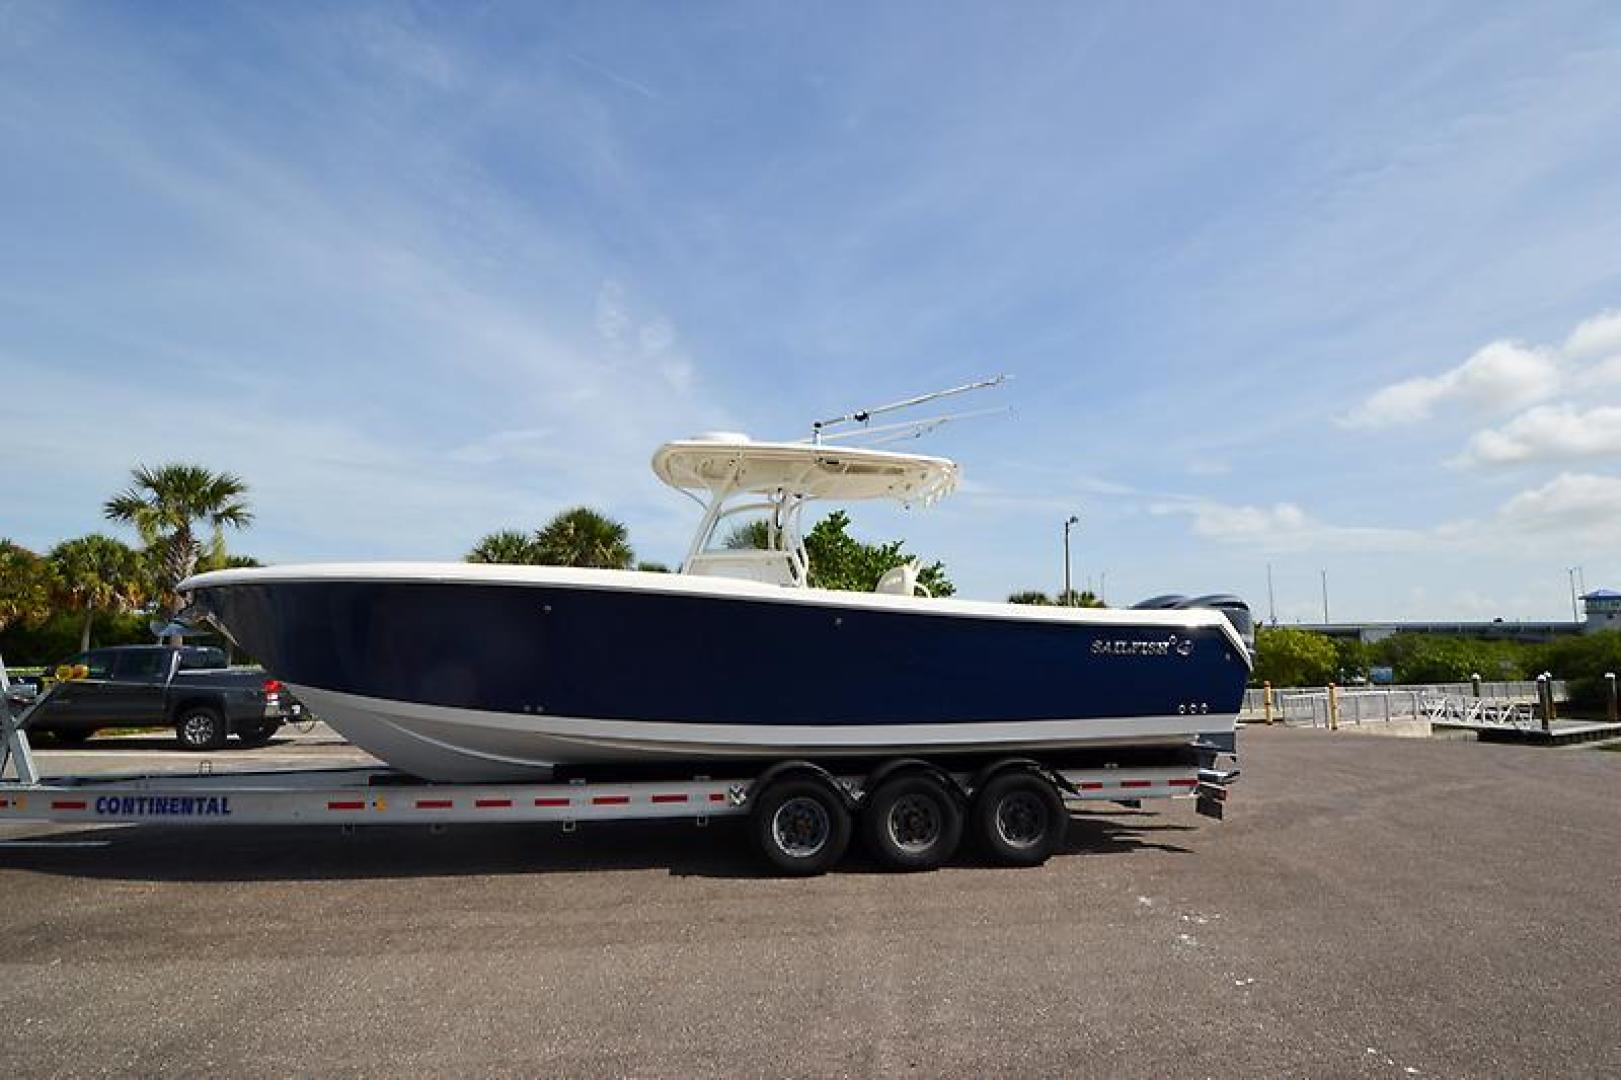 2014 Sailfish 320 cc-6.jpg